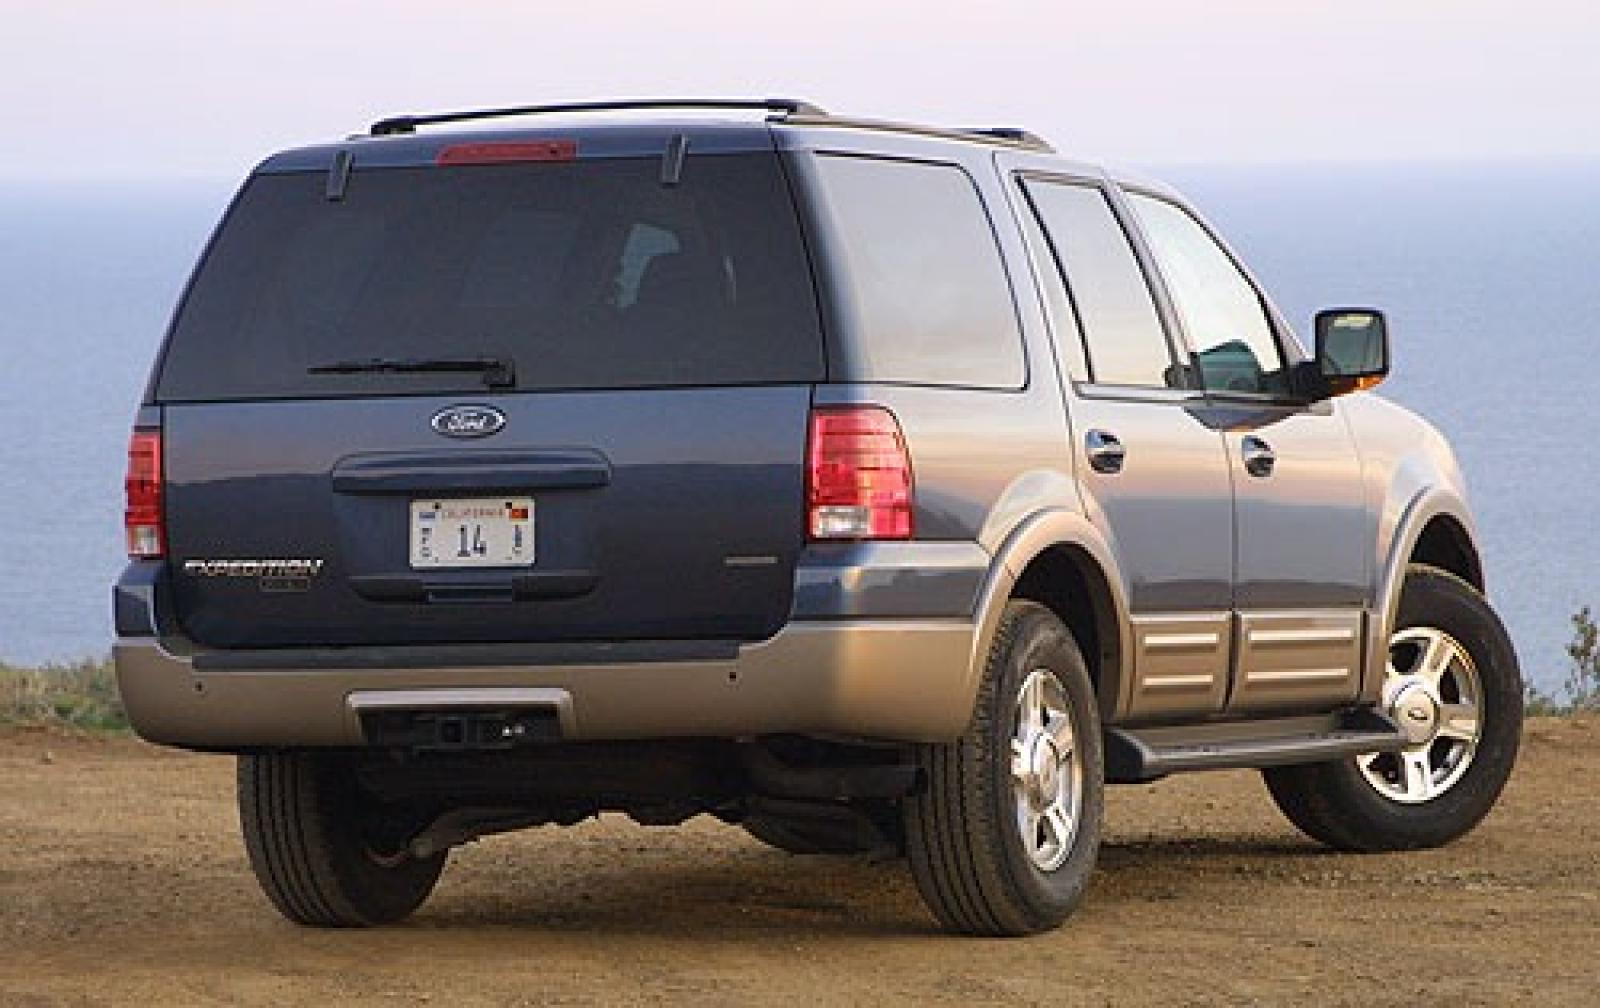 800 1024 1280 1600 origin 2006 ford expedition